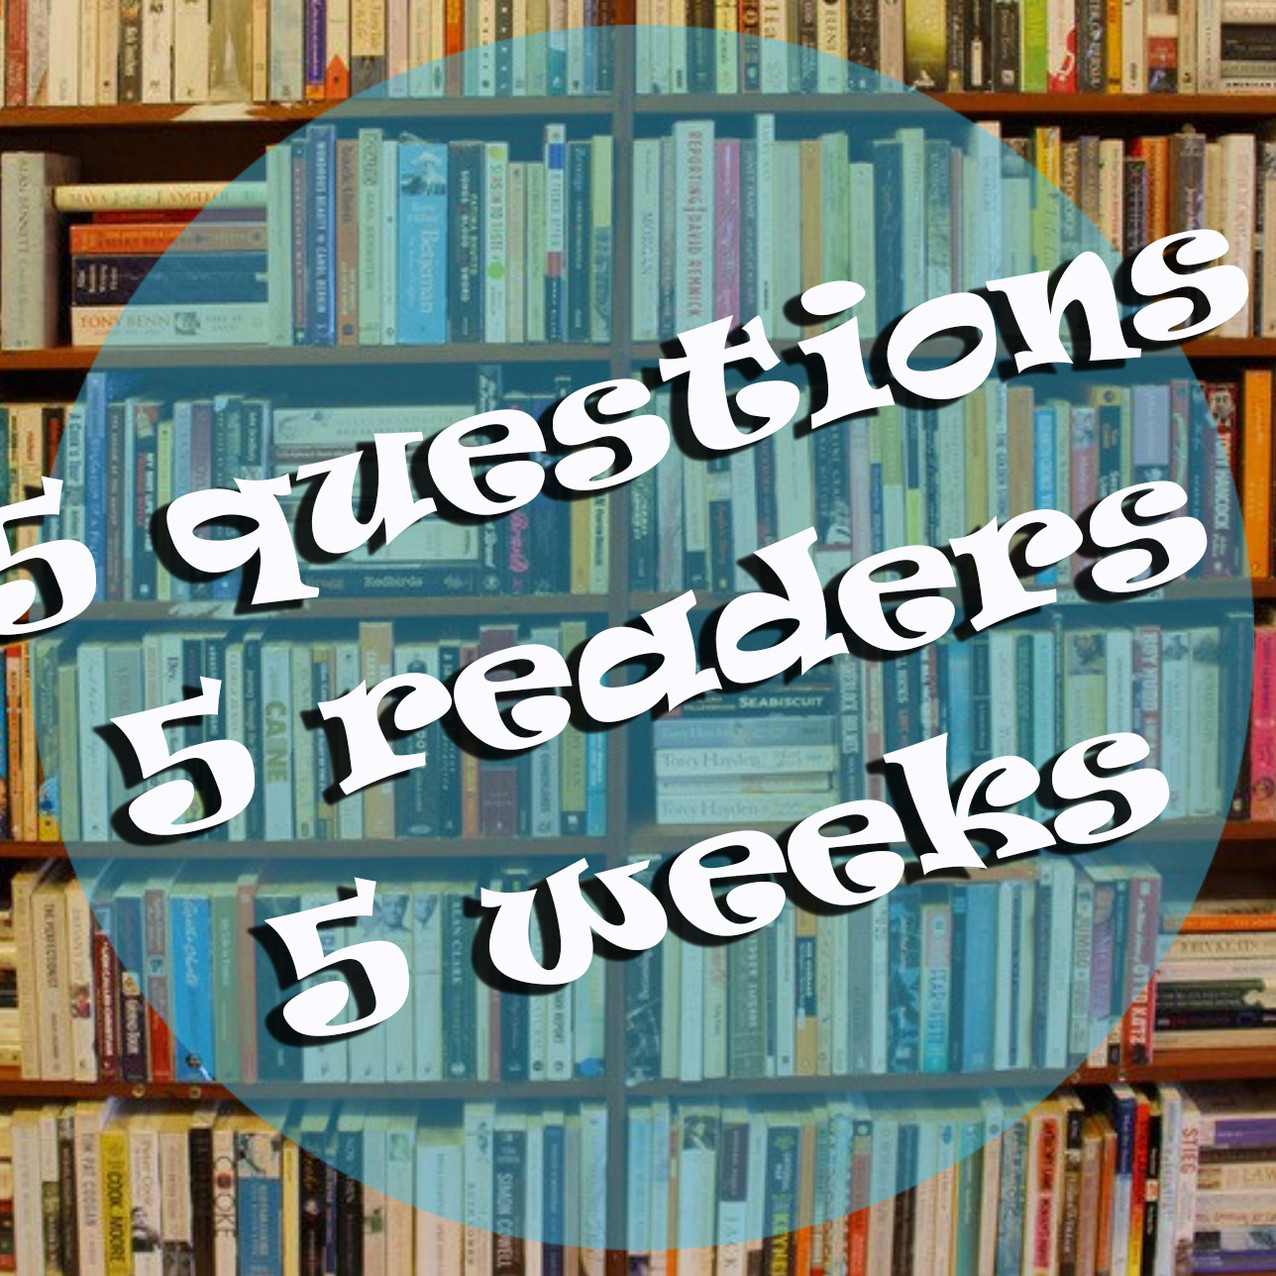 5 questions 5 readers 5 weeks